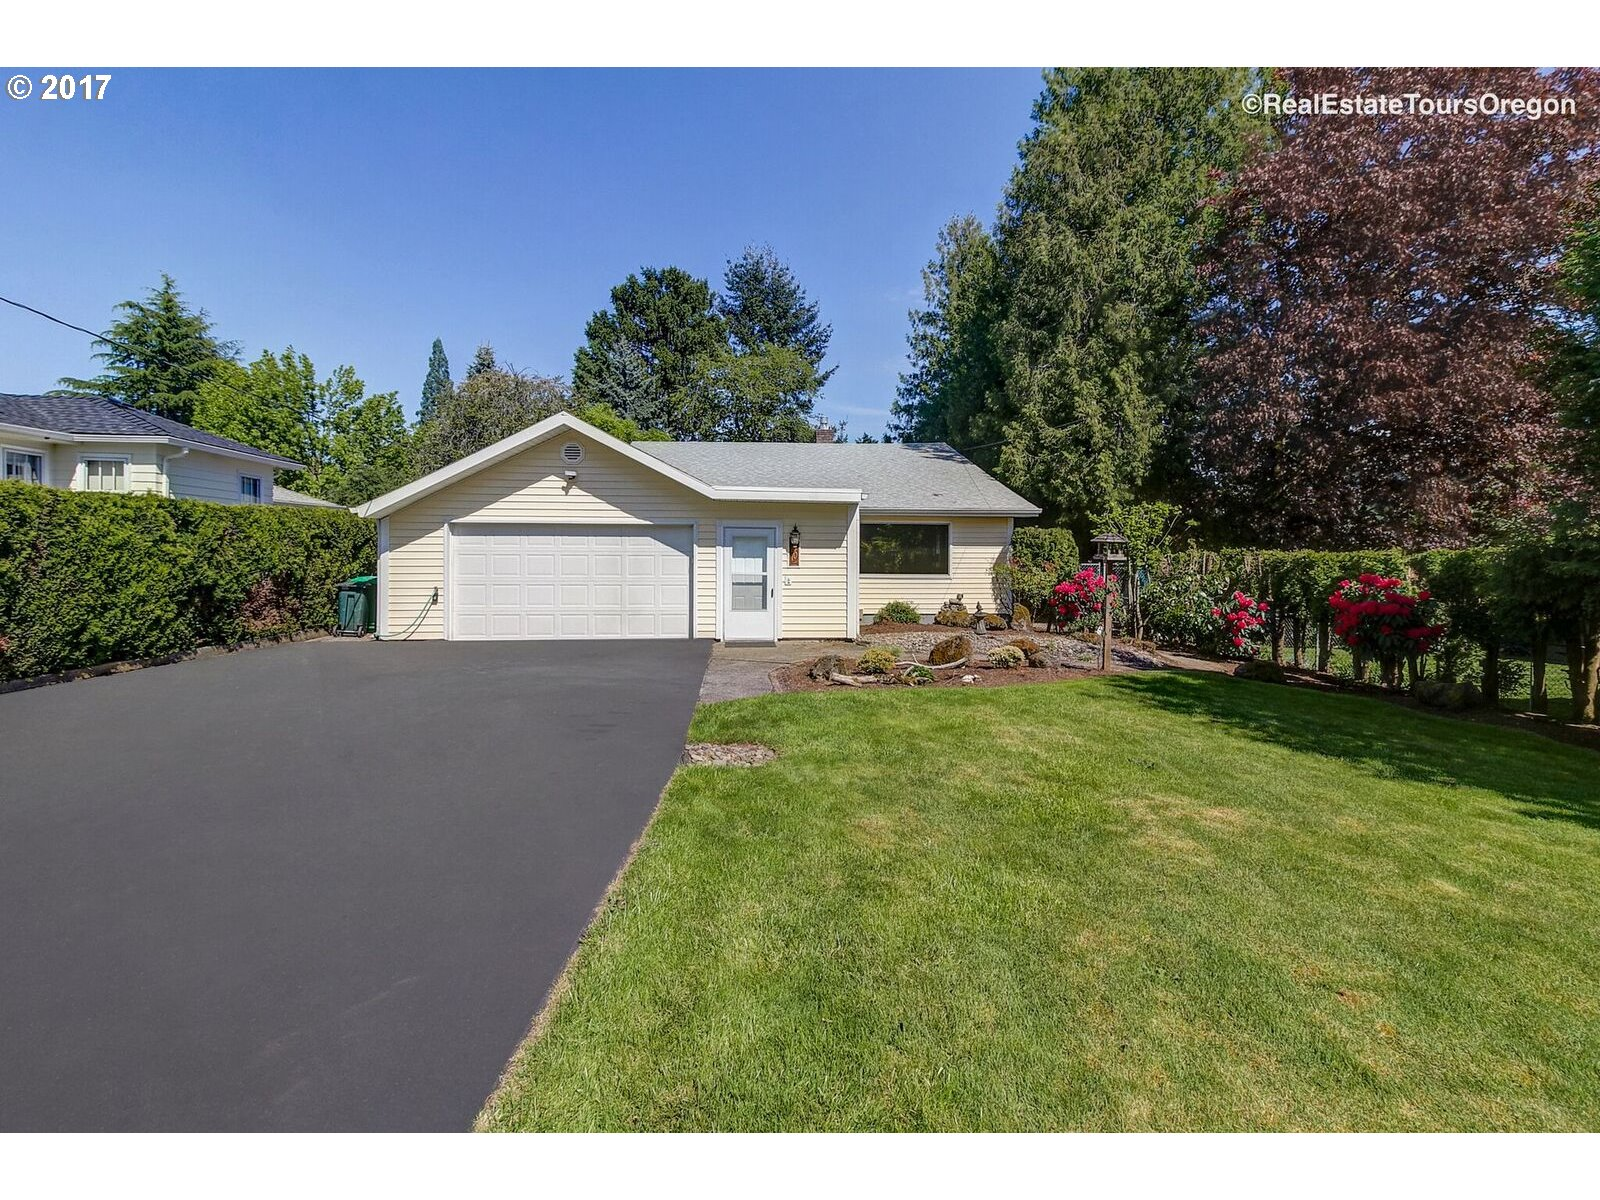 70 NW TOWLE AVE, Gresham, OR 97030